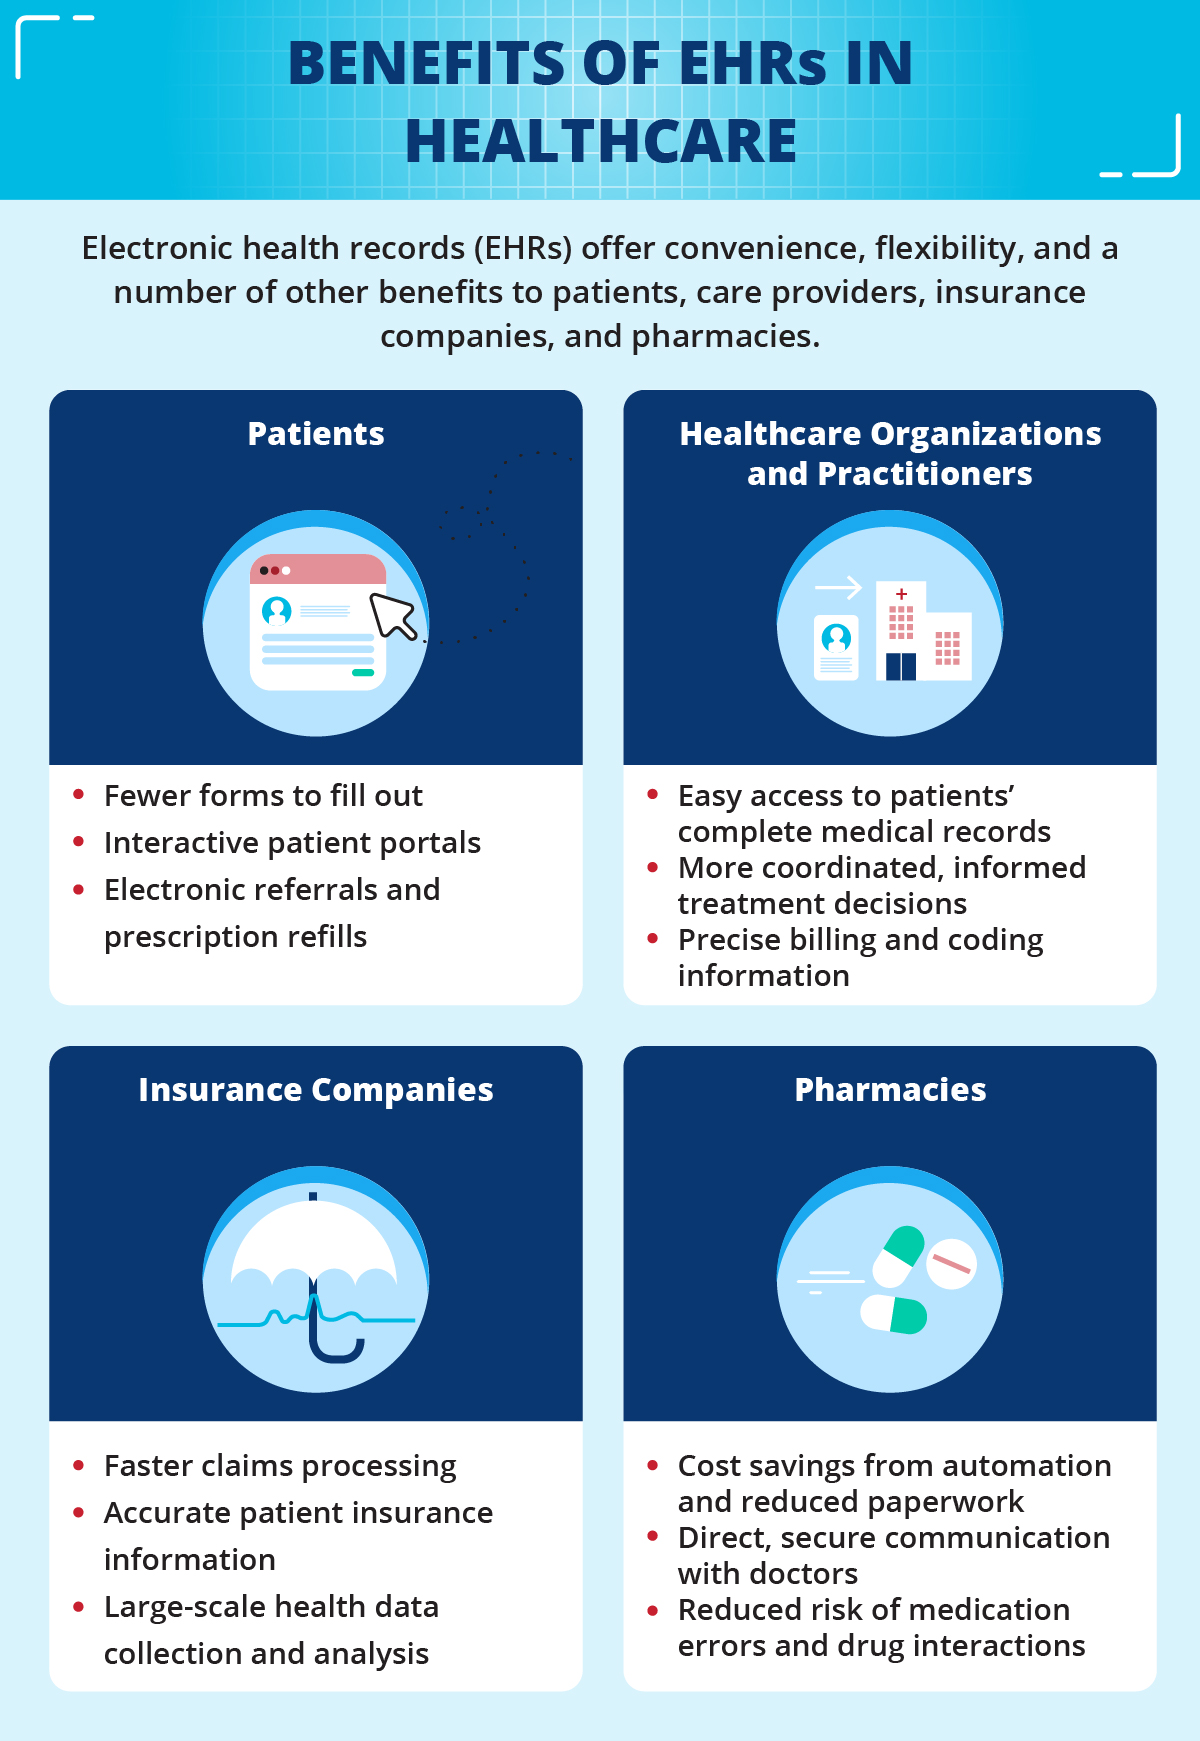 Benefits of EHRs in healthcare.